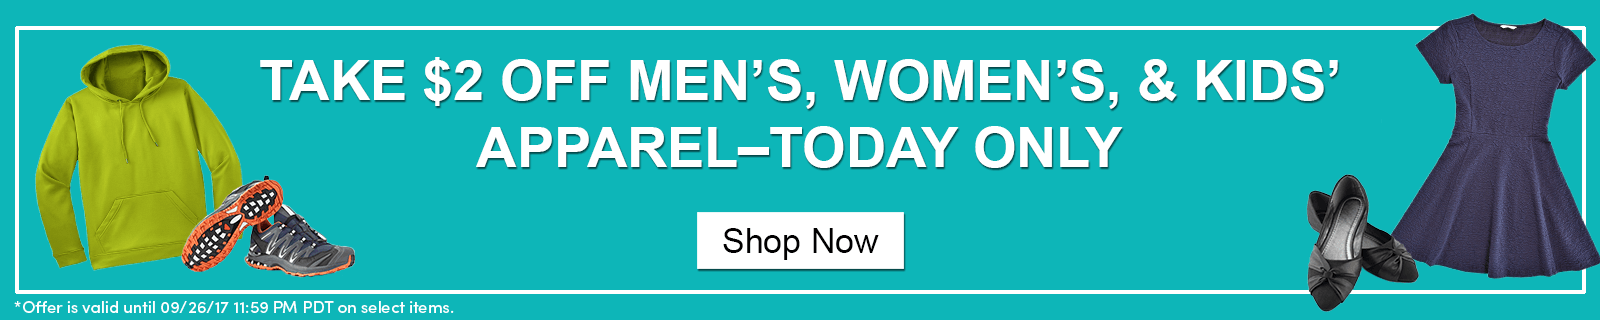 Take $2 Off Men's, Women's, & Kids' Apparel – Today Only! Shop Now